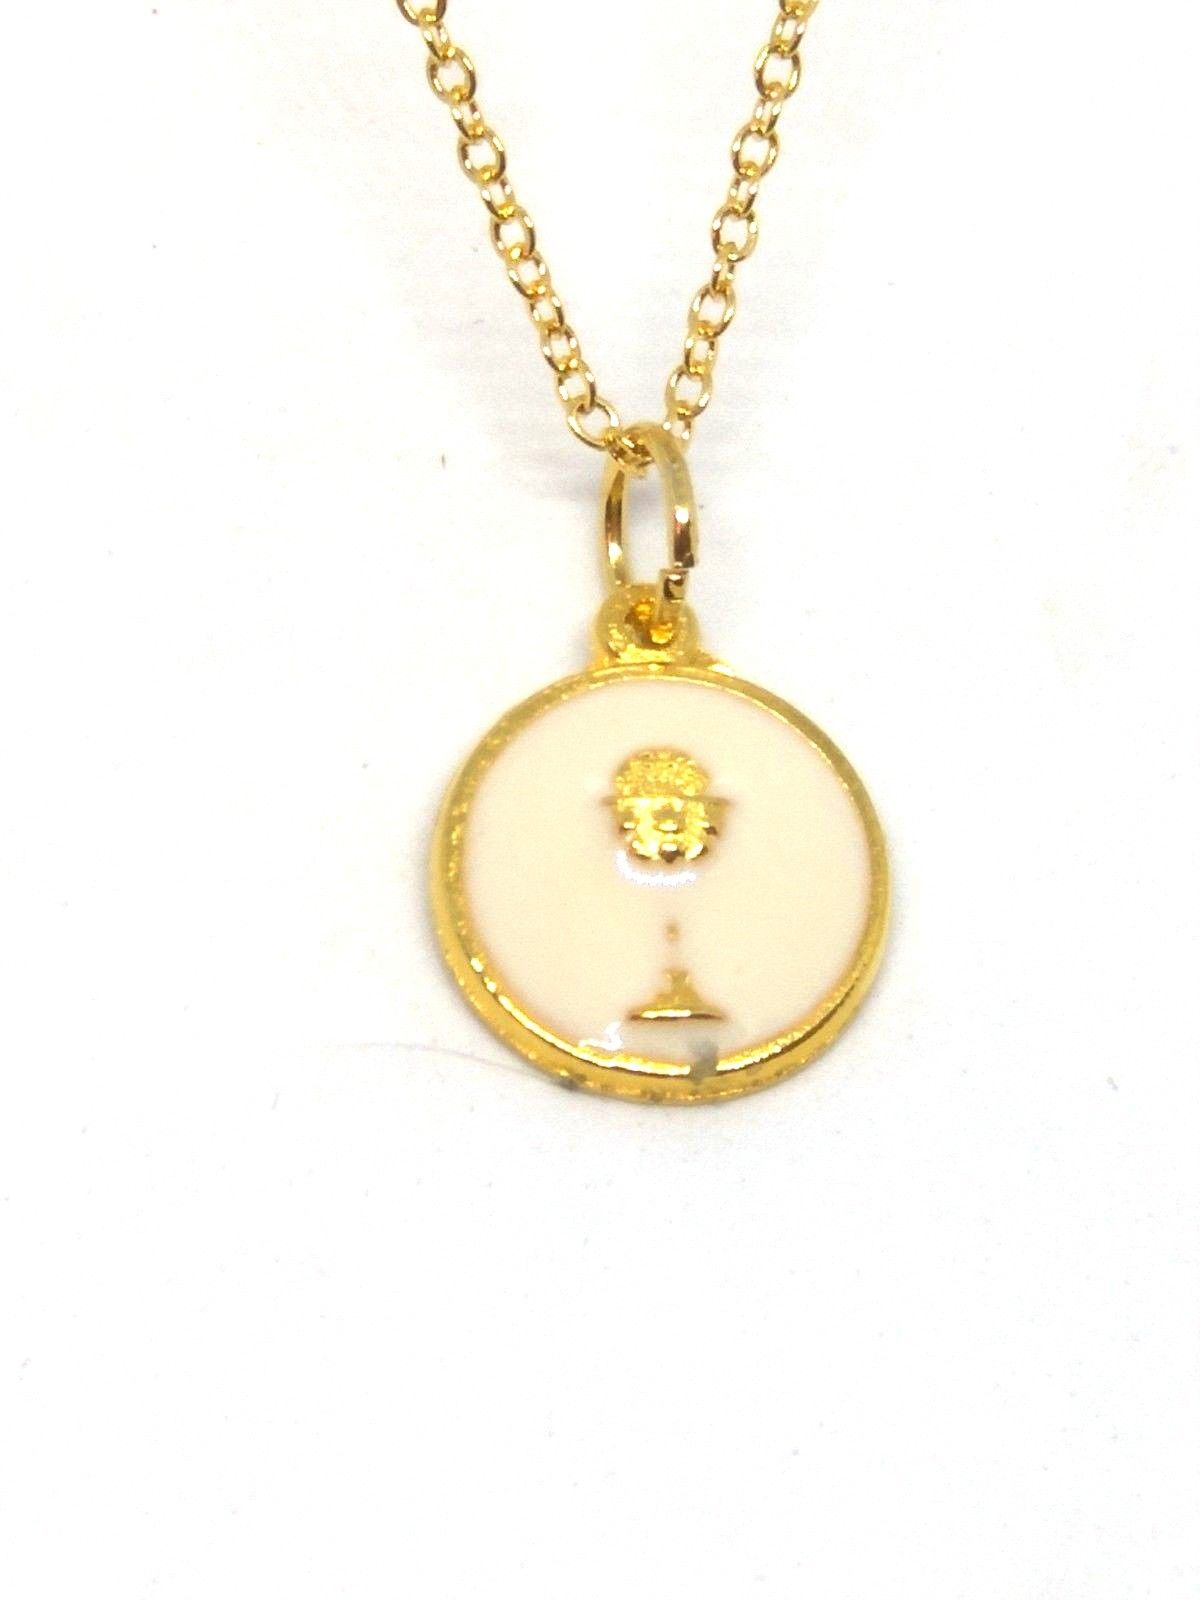 communion necklace company the pendants and first necklaces catholic